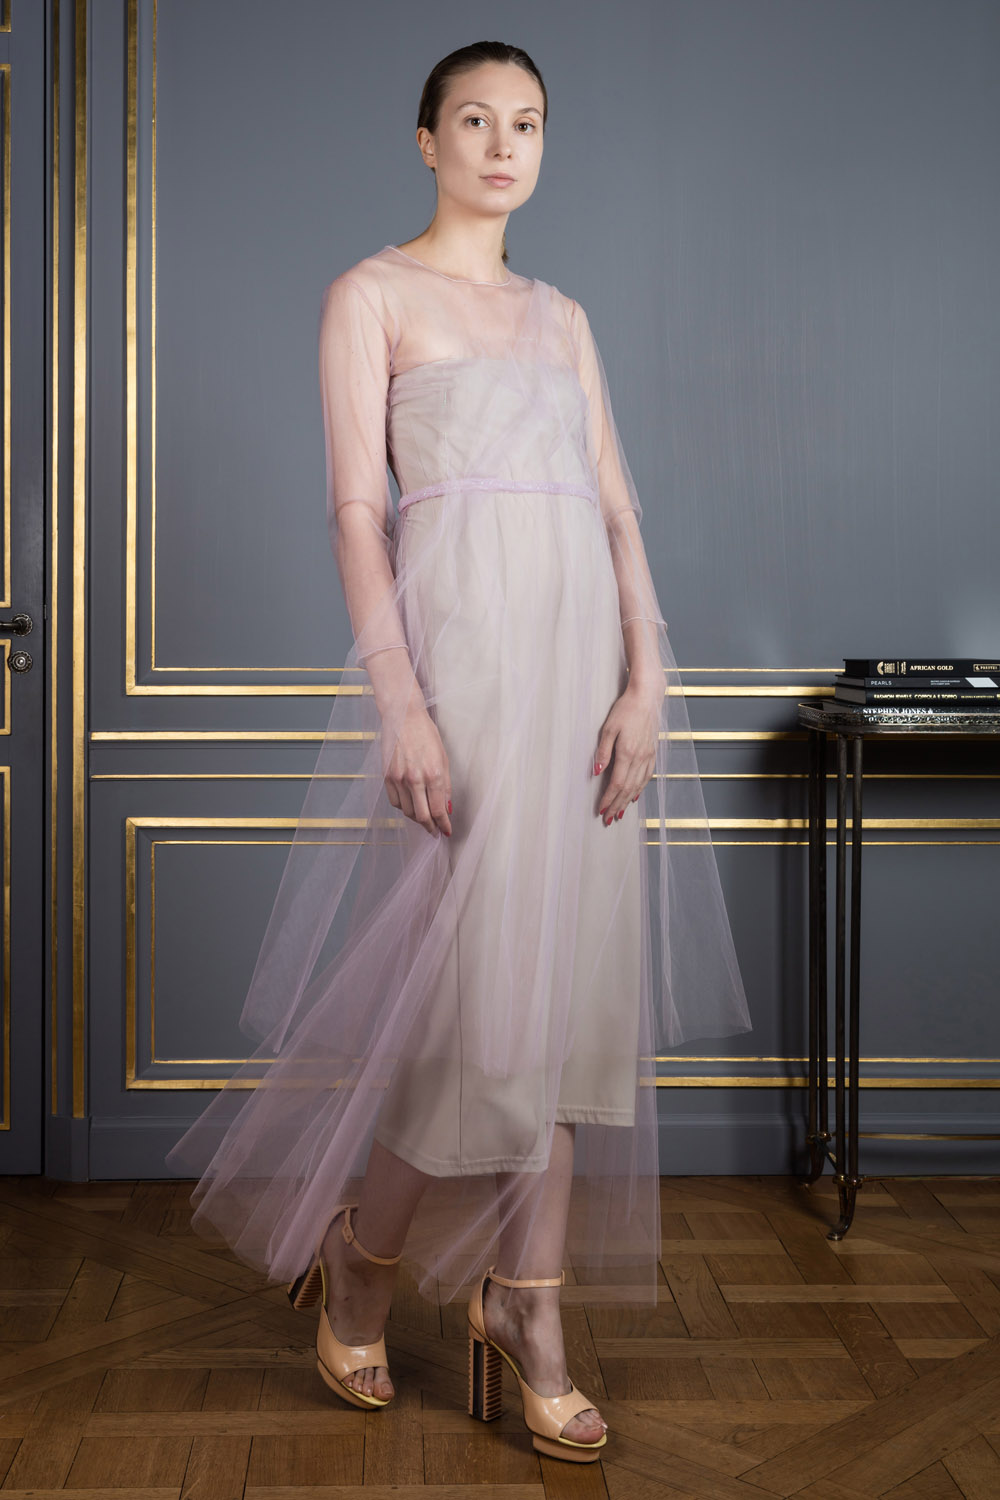 Lightweight tulle light dress